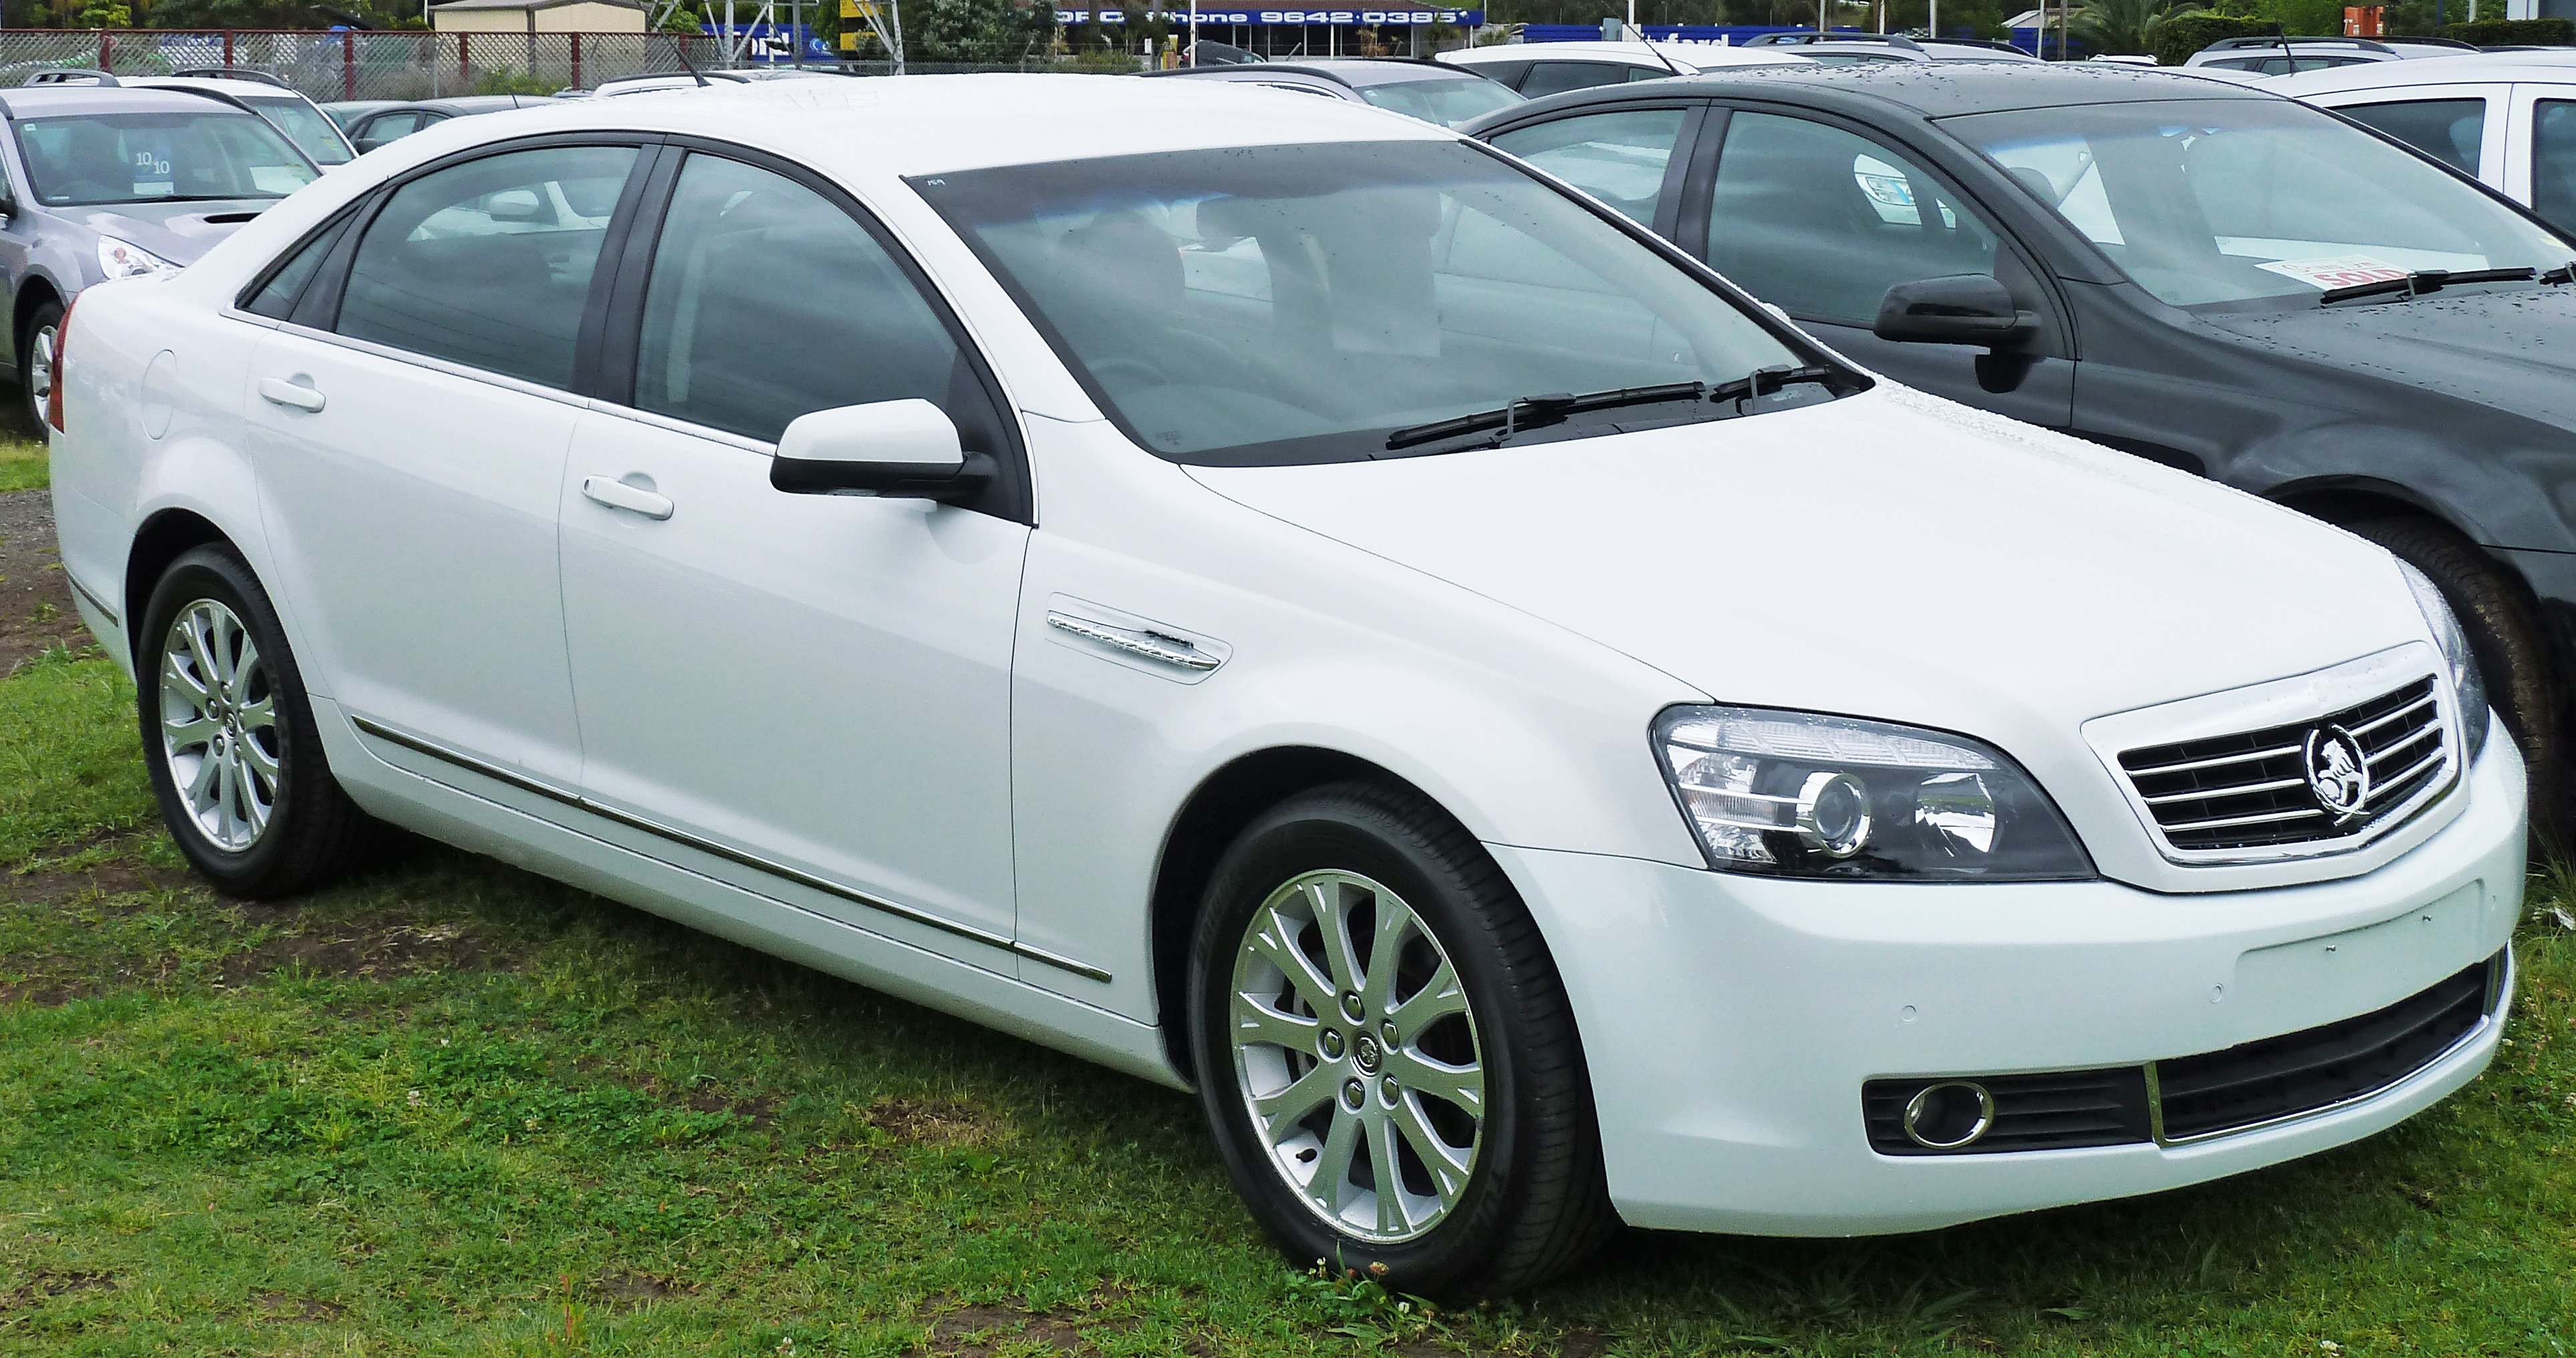 Holden Caprice Wikipedia 2010 Chevy Malibu Wiring Diagram